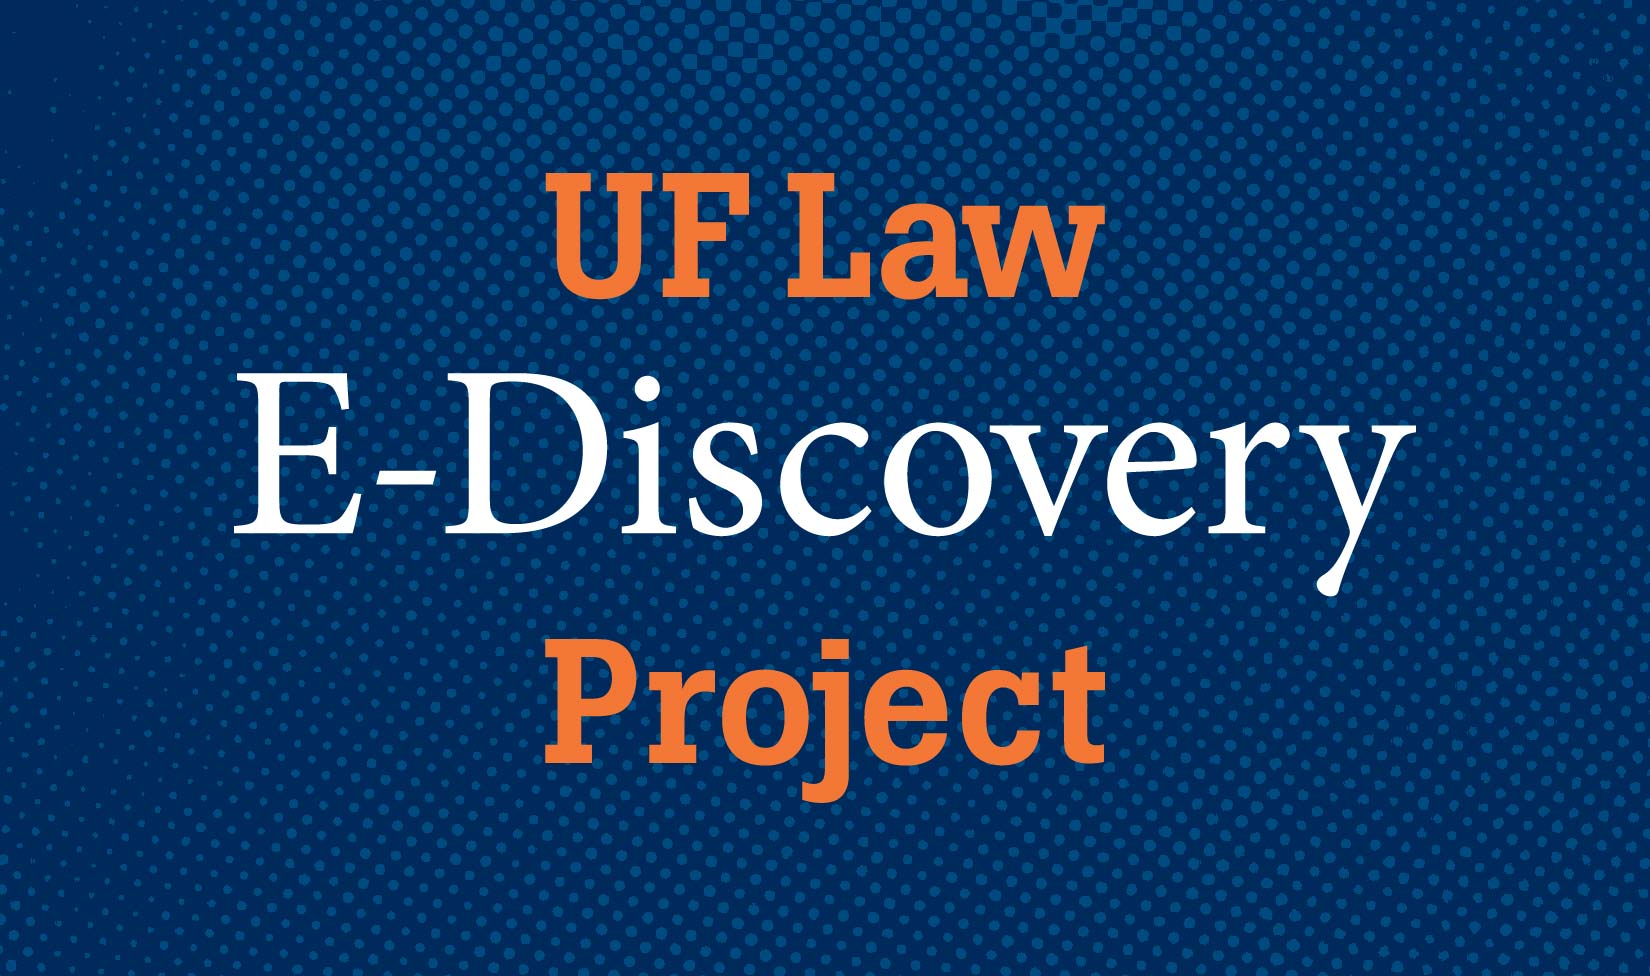 Uf Law E Discovery Conference Uflaw University Of Florida